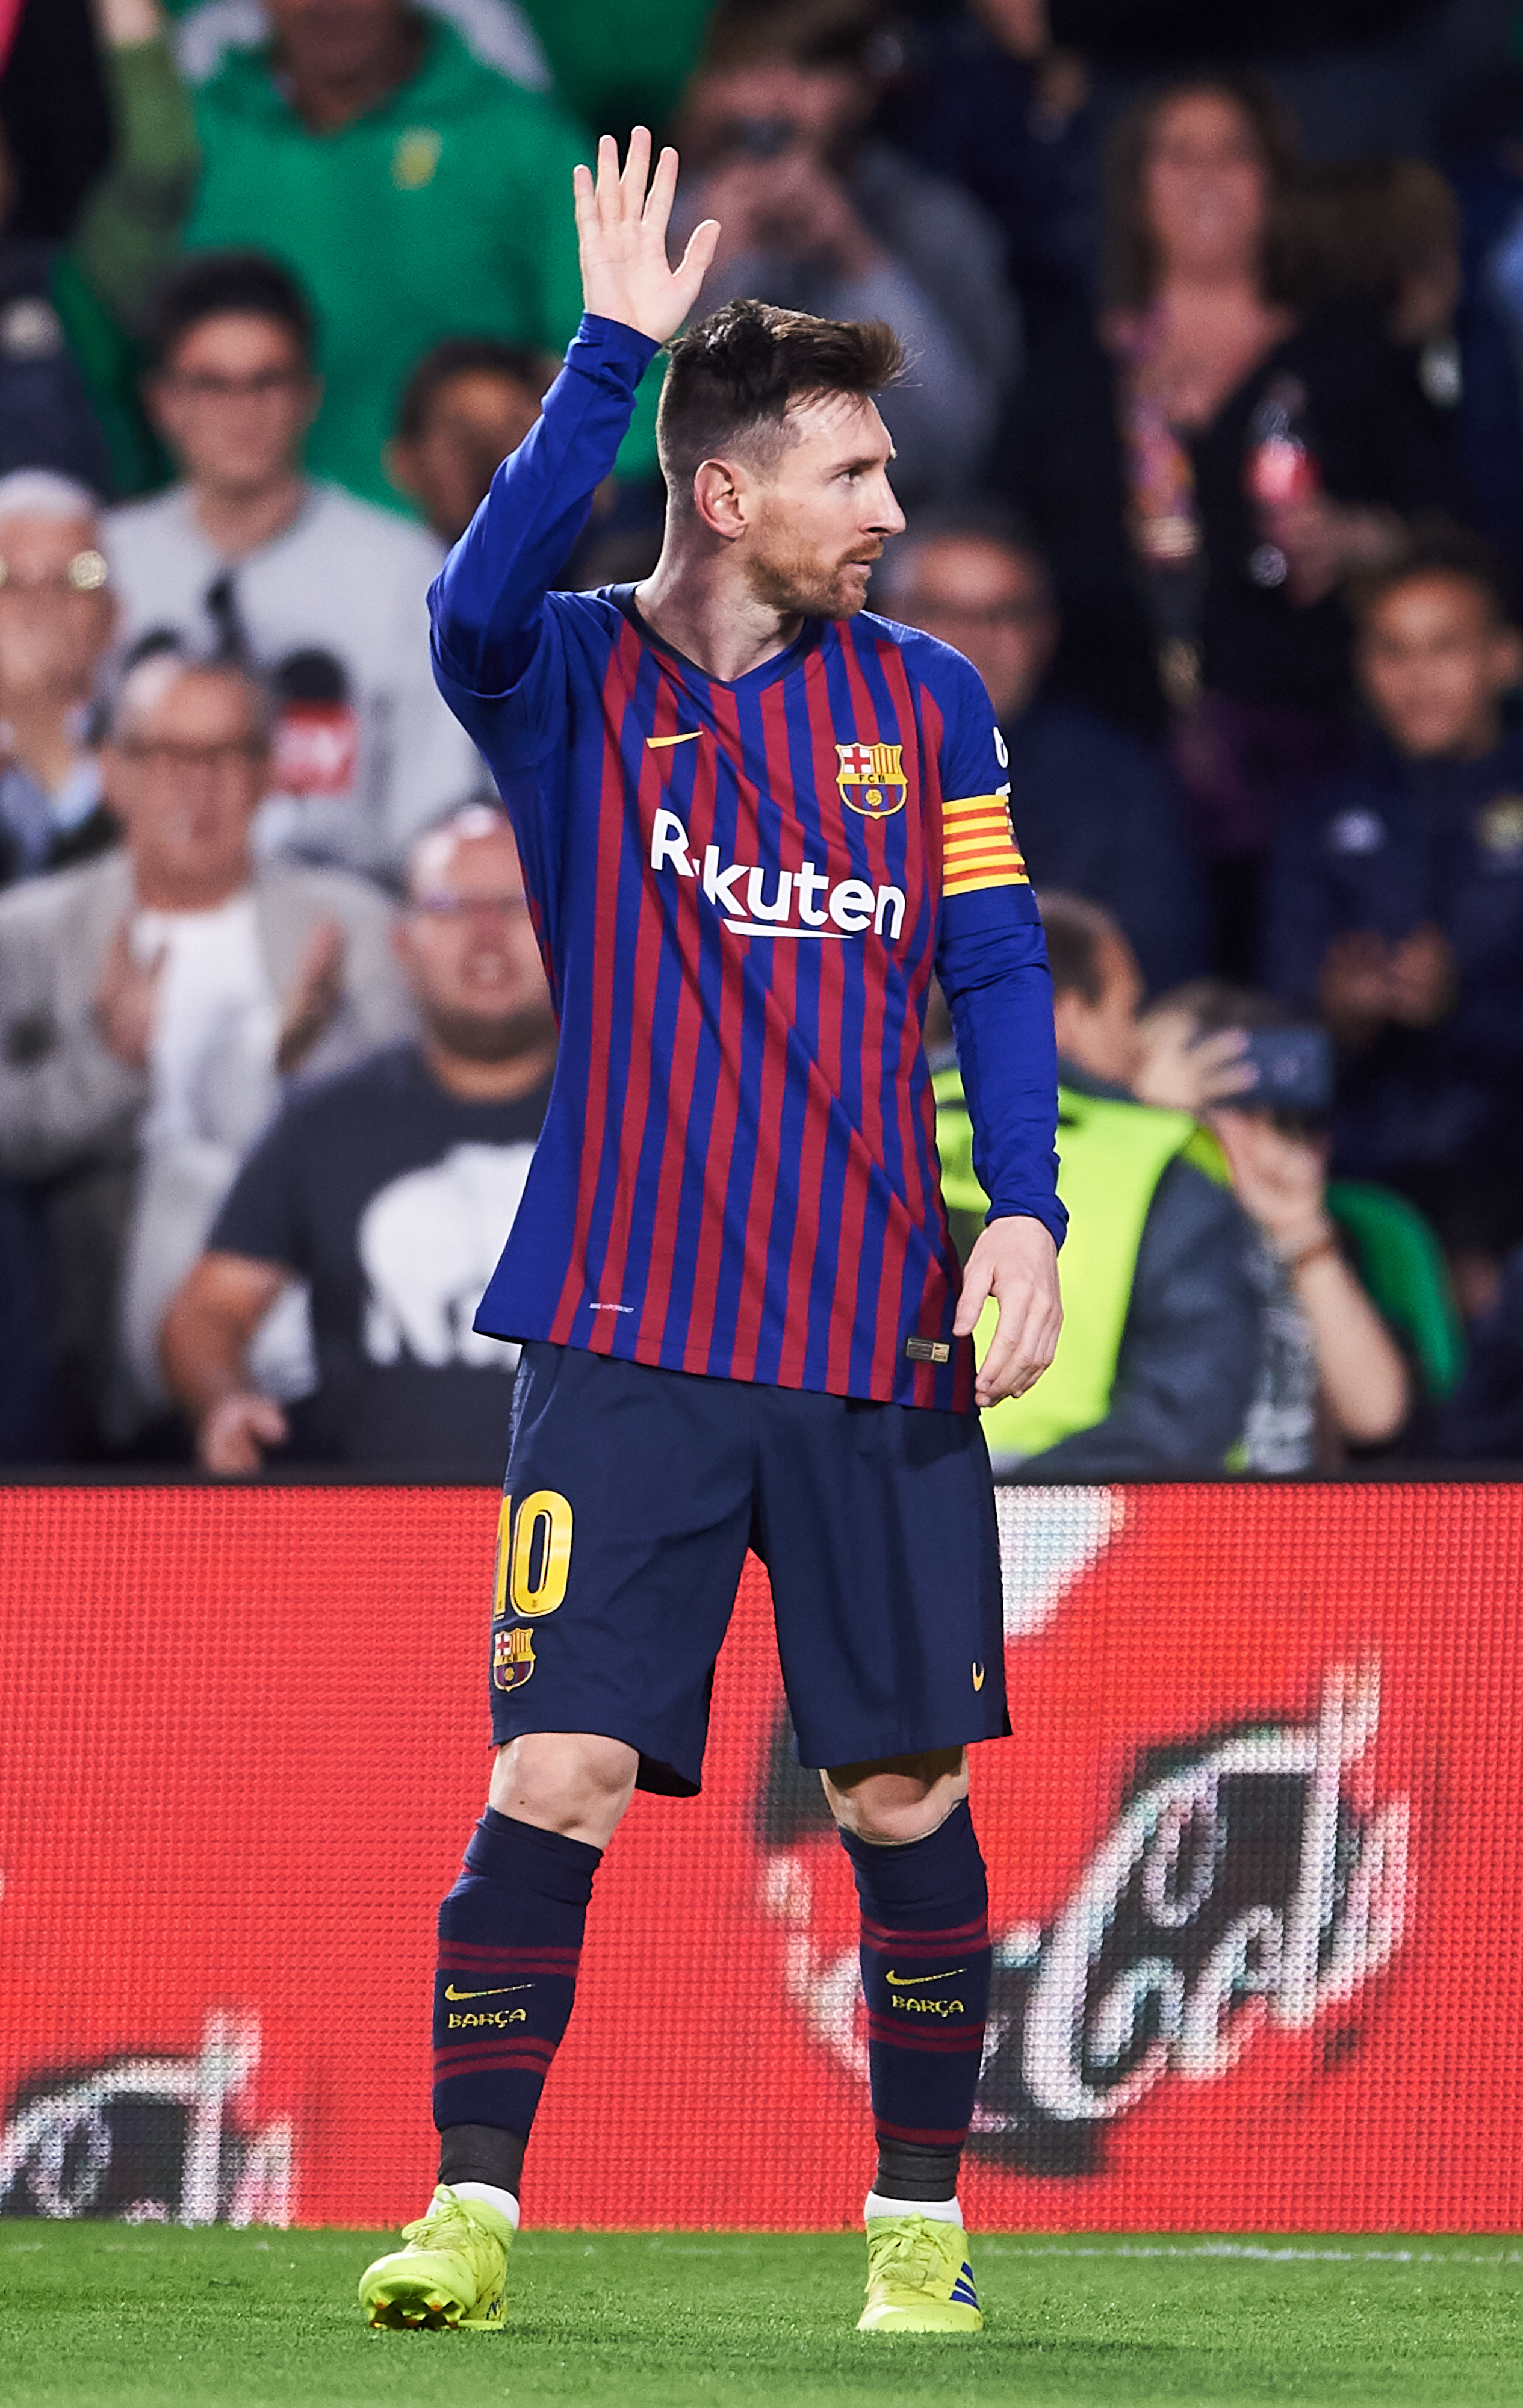 e1a4faec09f Messi grateful to Real Betis fans after hat-trick ovation